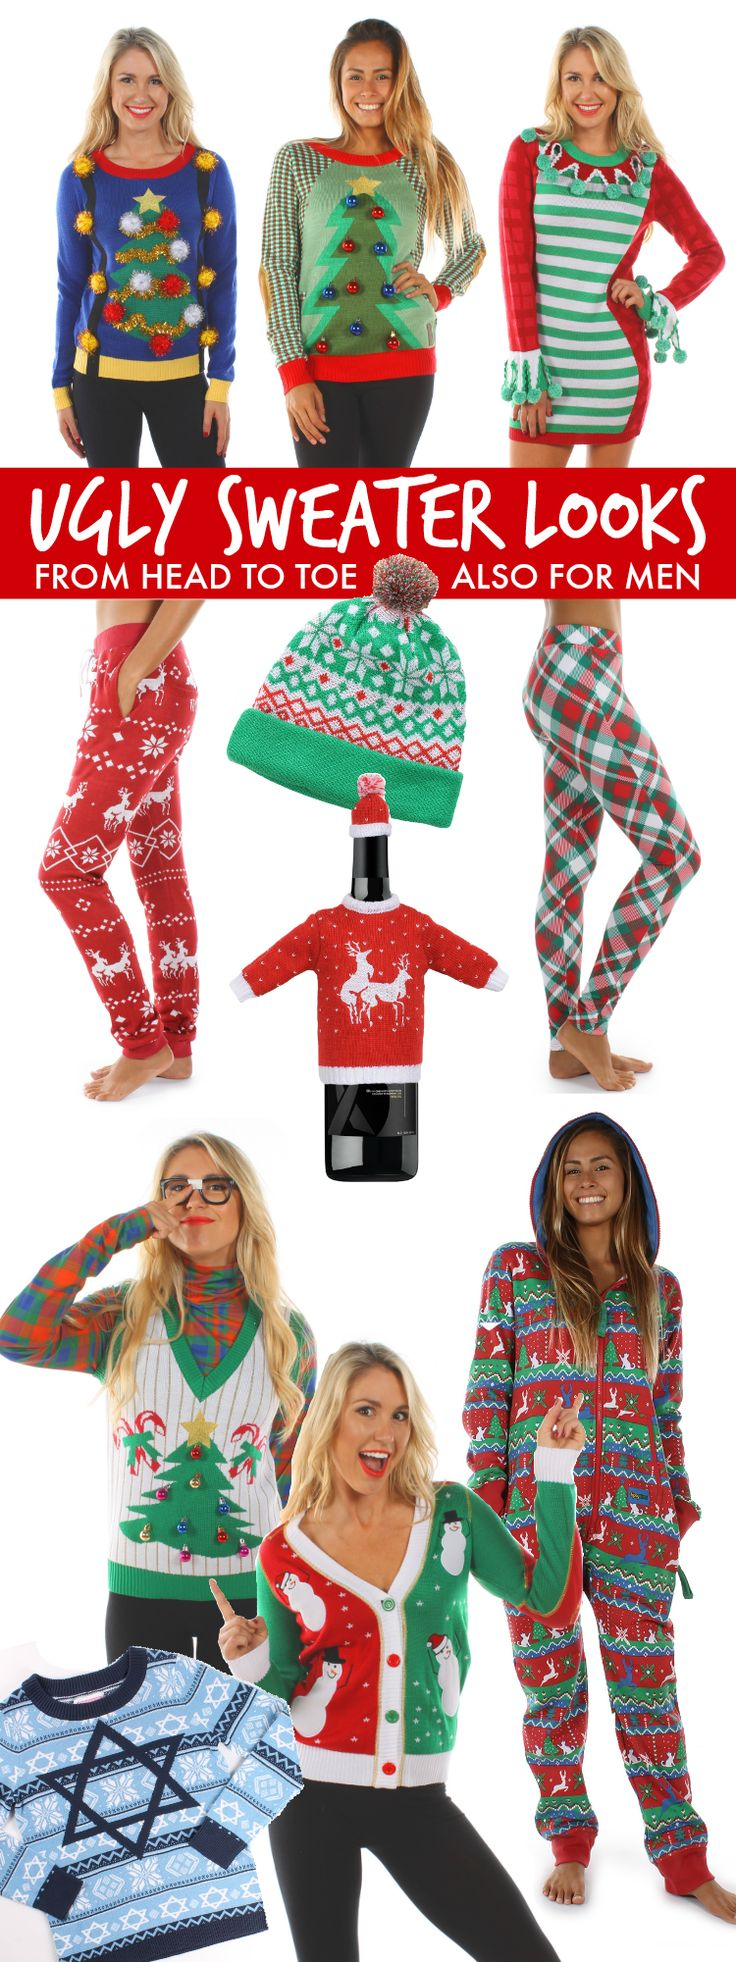 Christmas dress ideas for office party - Be Hot Hip And Hilarious With These Ugly Christmas Sweater Party Looks From Head To